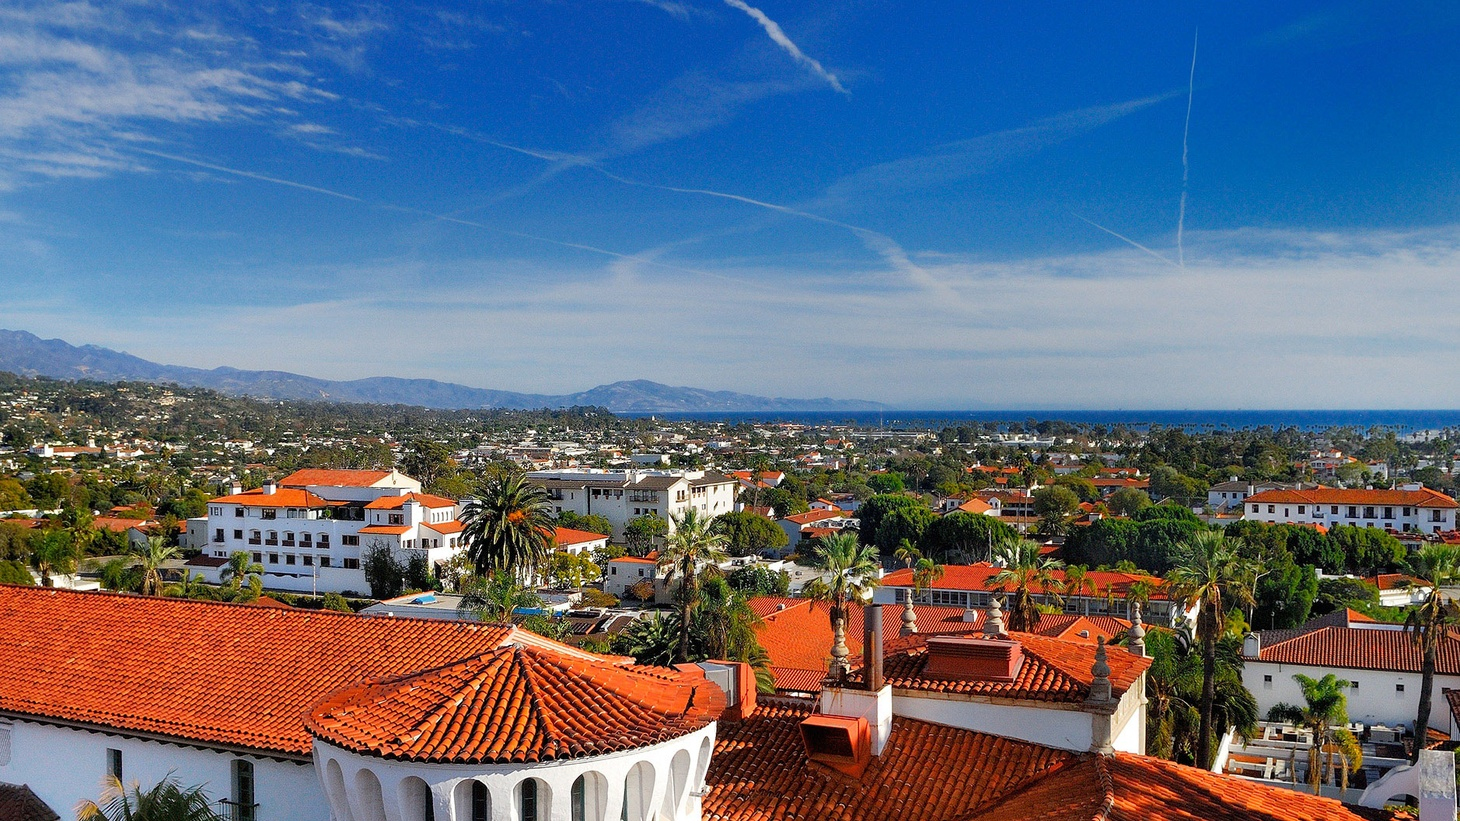 To understand Santa Barbara's current housing situation, you just need to look at the numbers: the median home price is around $1 million, the rental market is 99.5 percent full, and there's a 10-year waiting list for public housing.